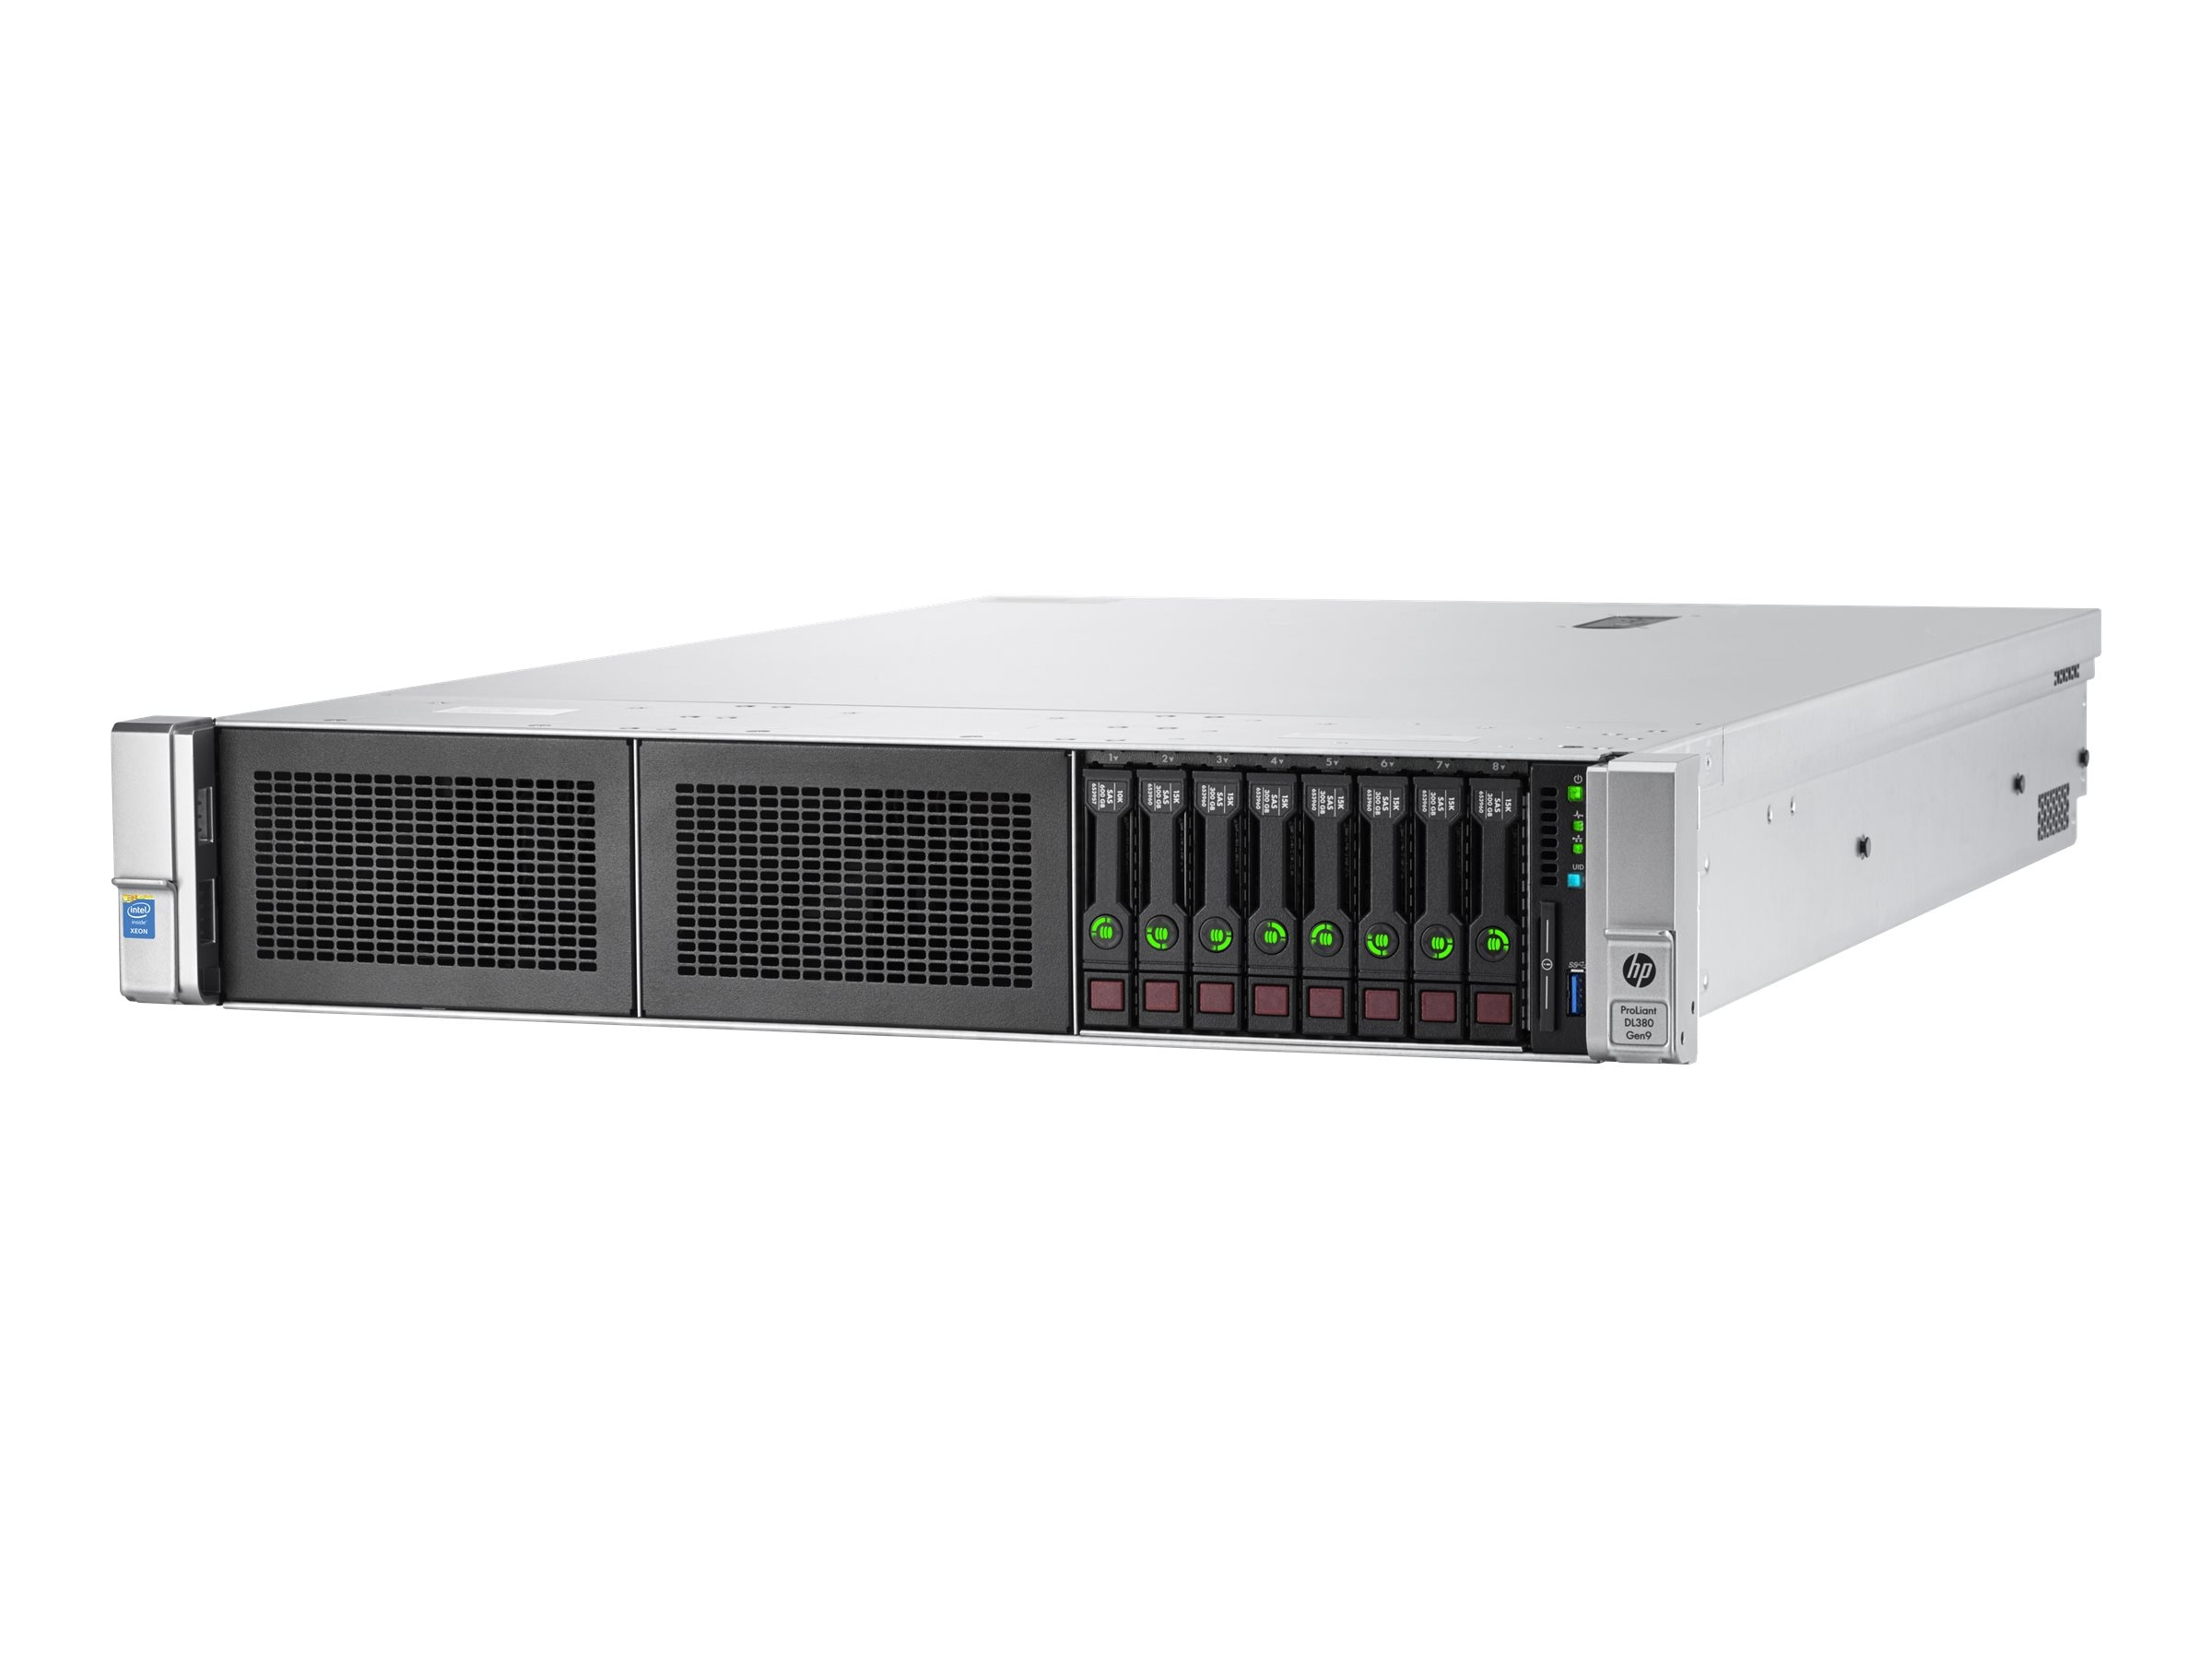 HPE ProLiant DL380 Gen9 Intel 2.6GHz Xeon, 800077-S01, 18107025, Servers